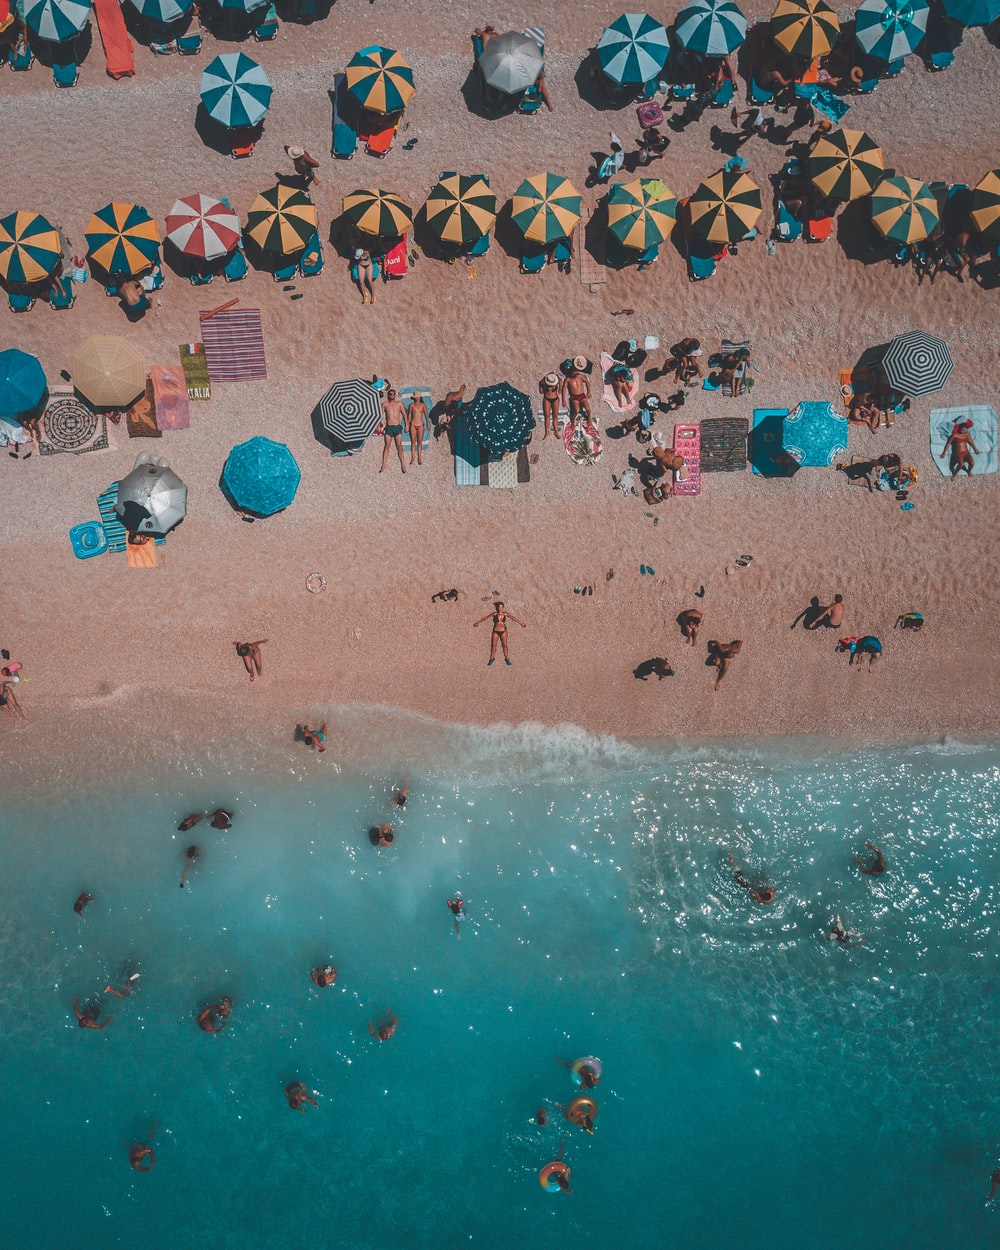 aerial photography group of person enjoying on beach